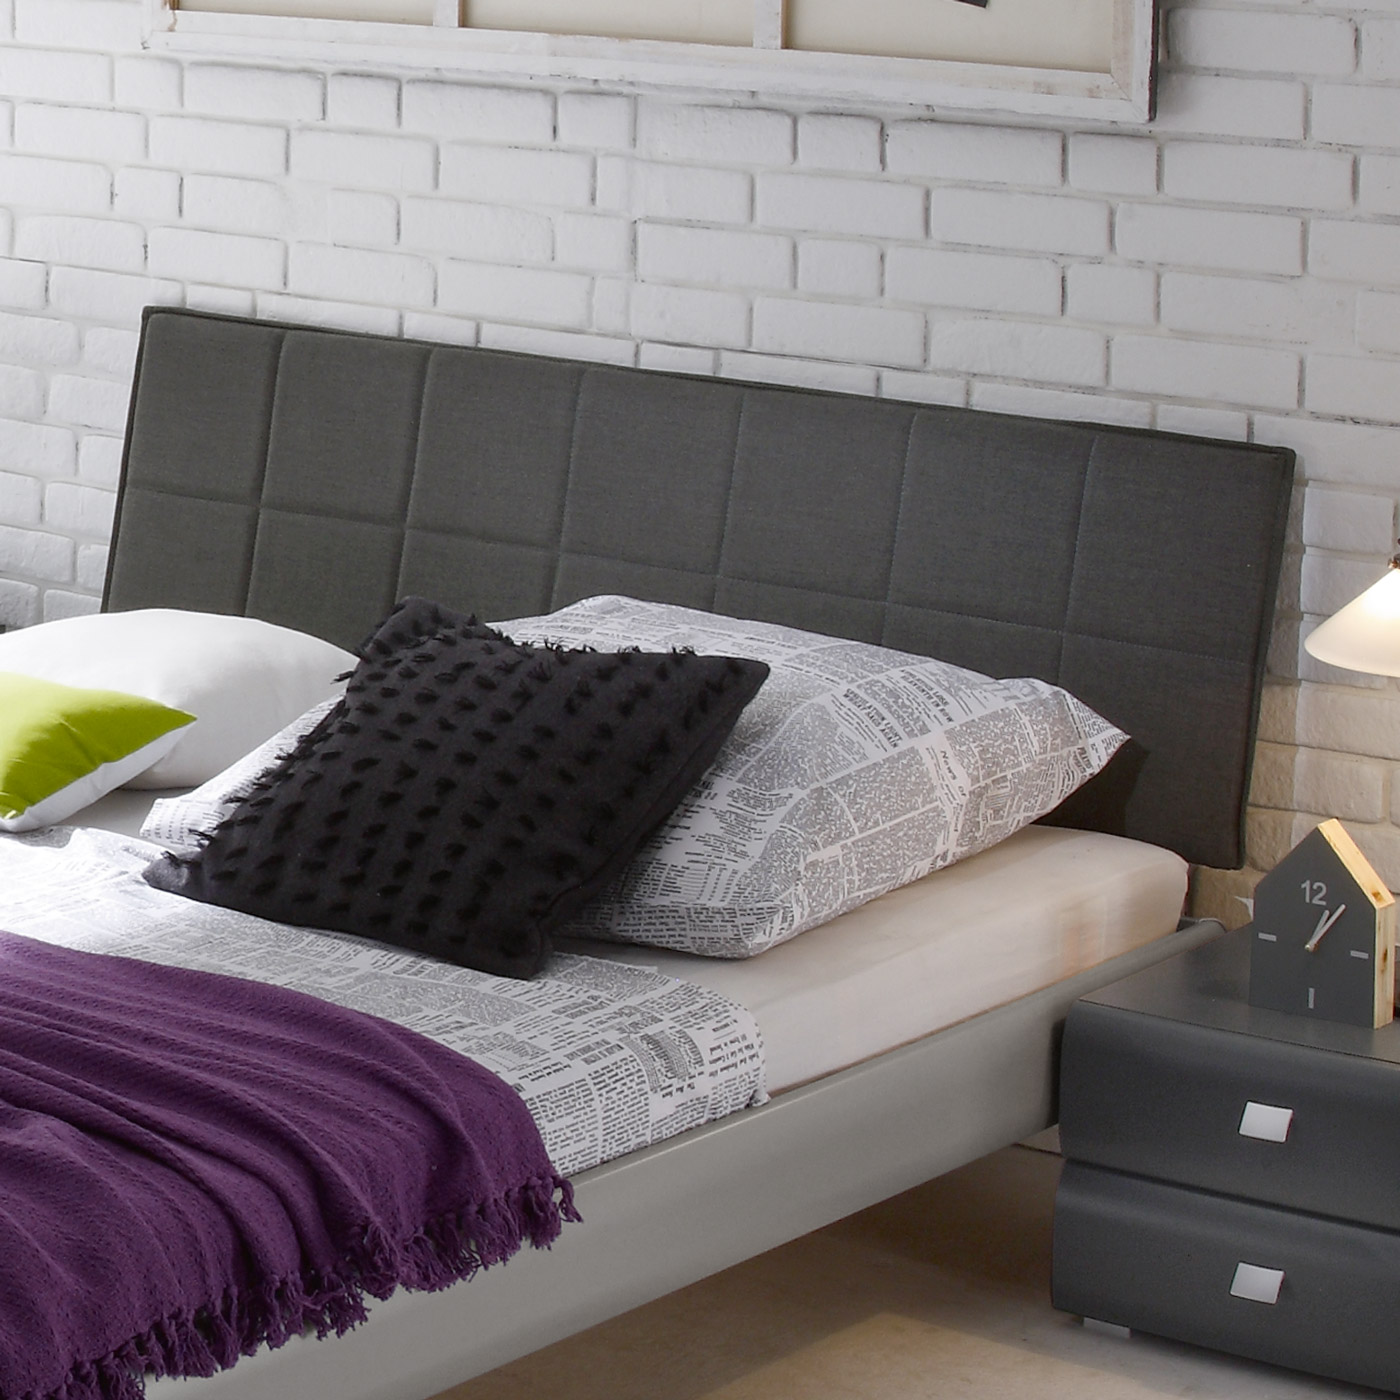 modernes bettgestell mit kopfteil aus verstepptem velours bamako. Black Bedroom Furniture Sets. Home Design Ideas